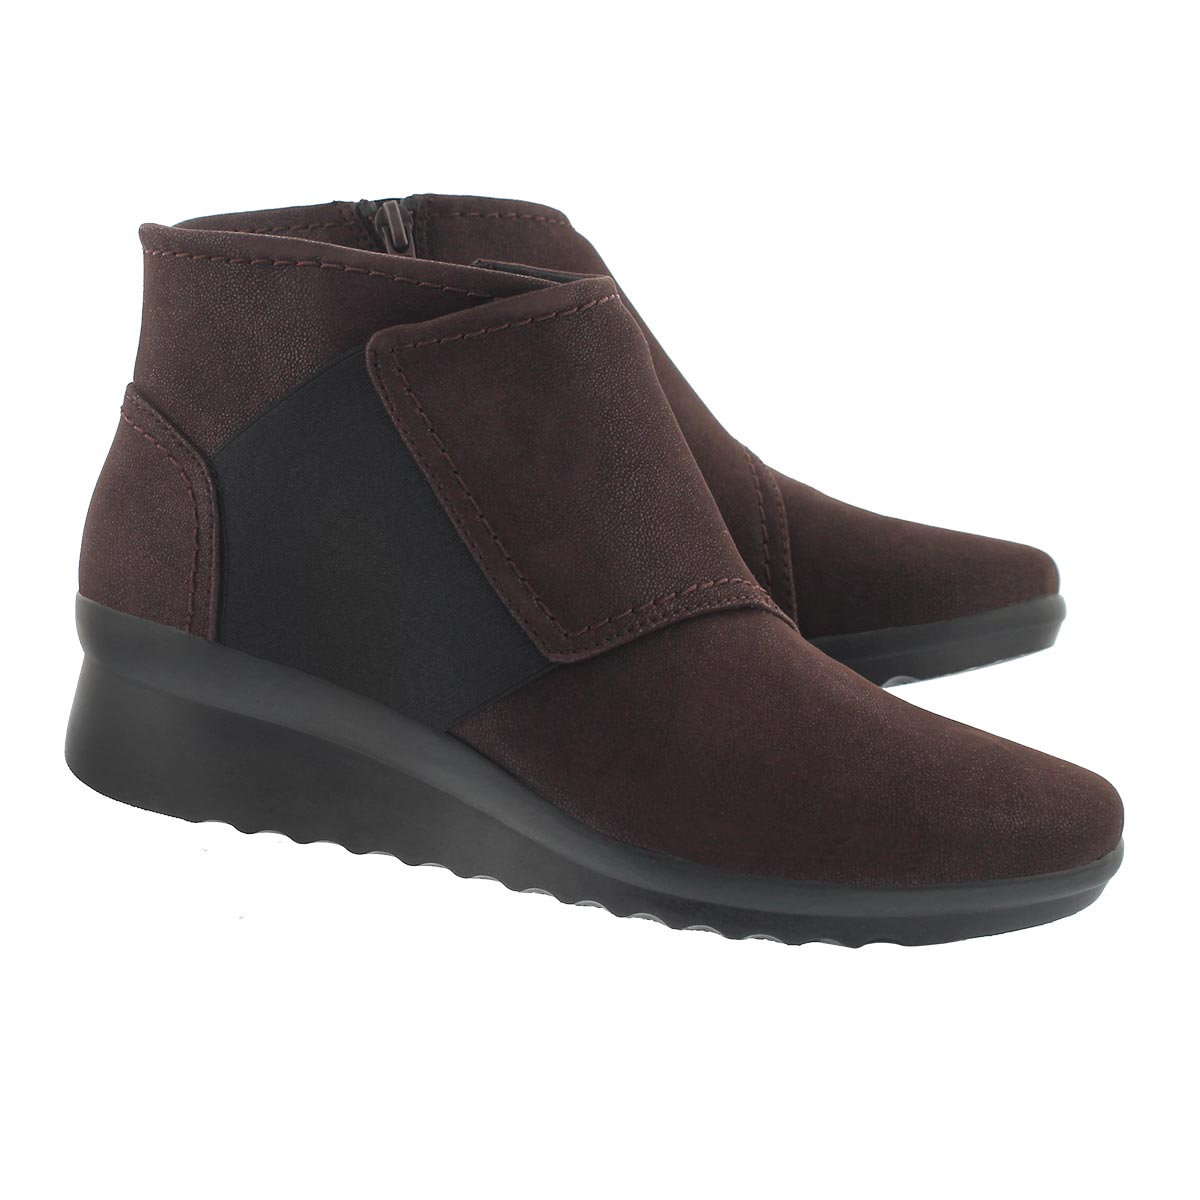 Lds Caddell Rush burgundy wedge boot